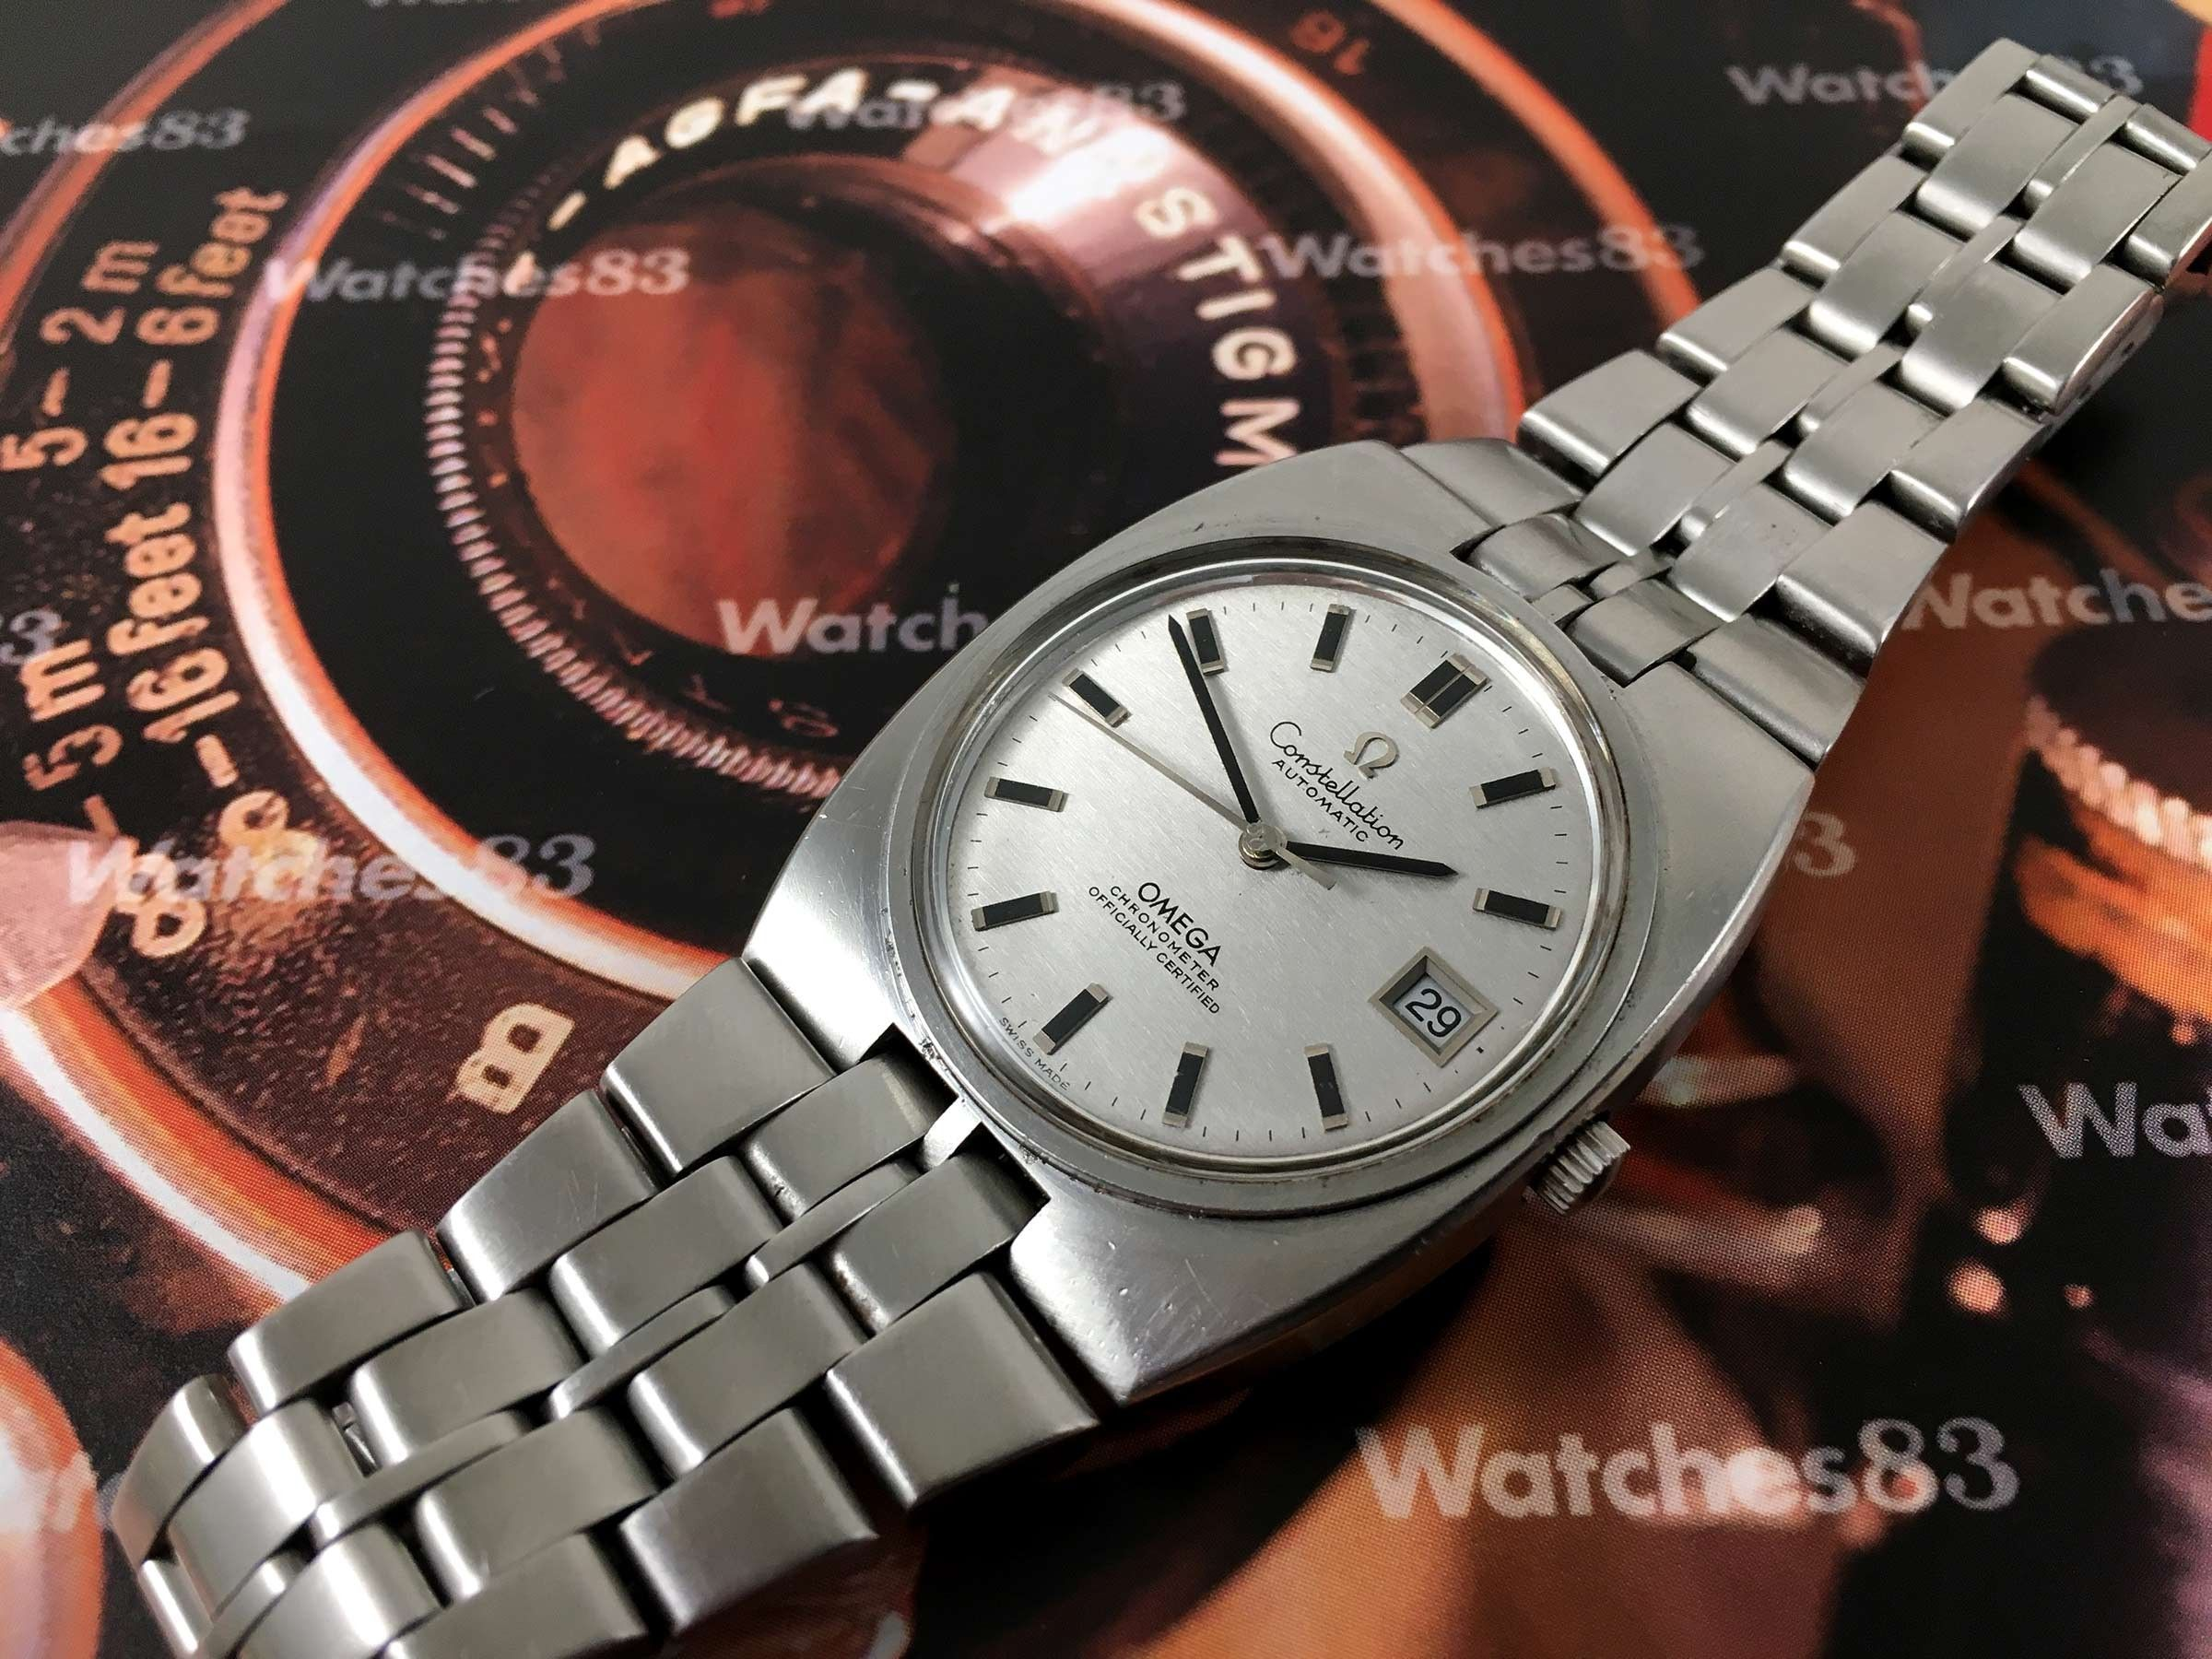 Omega Constellation Chronometer Officially Certified Vintage